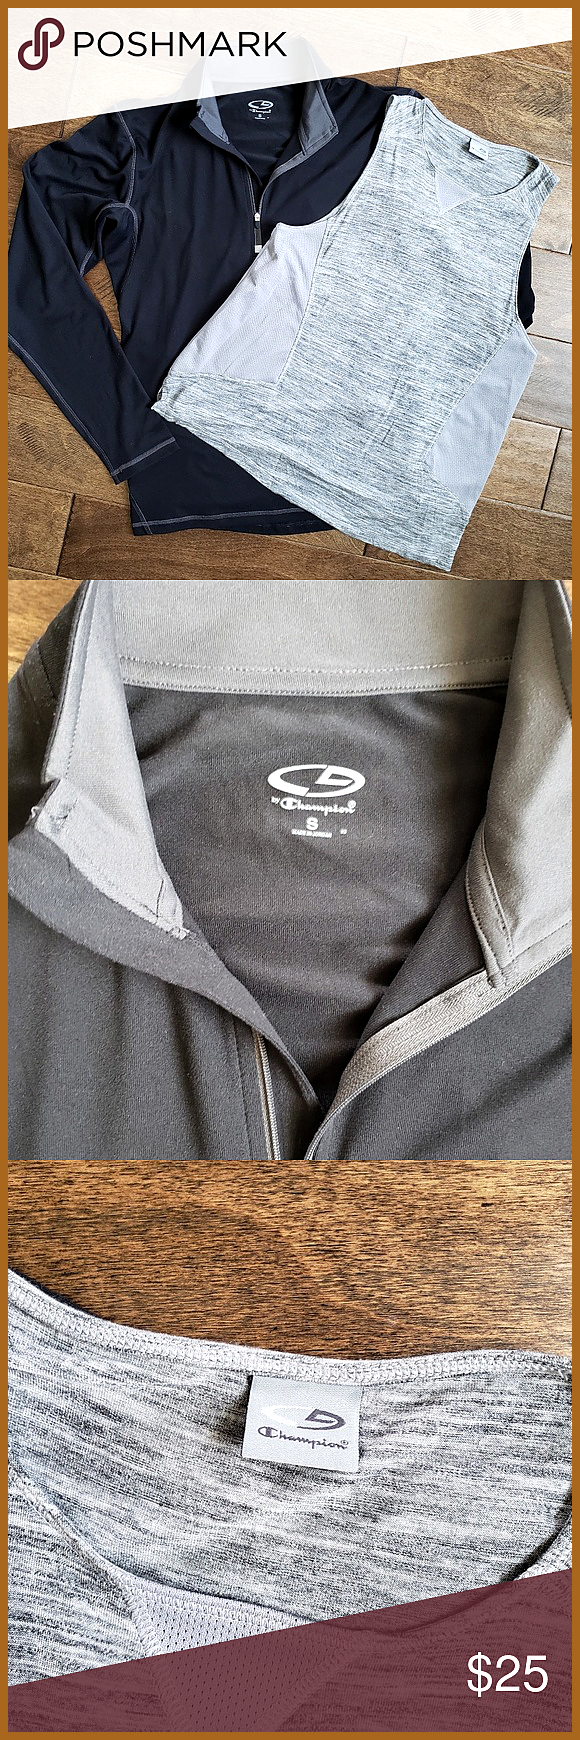 Champion Pullover Tank Top Bundle Small Women s black pullover and gray tank top by Champion bundle Size small Make me an offer Champion Jackets 038 C Champion Pullover T...